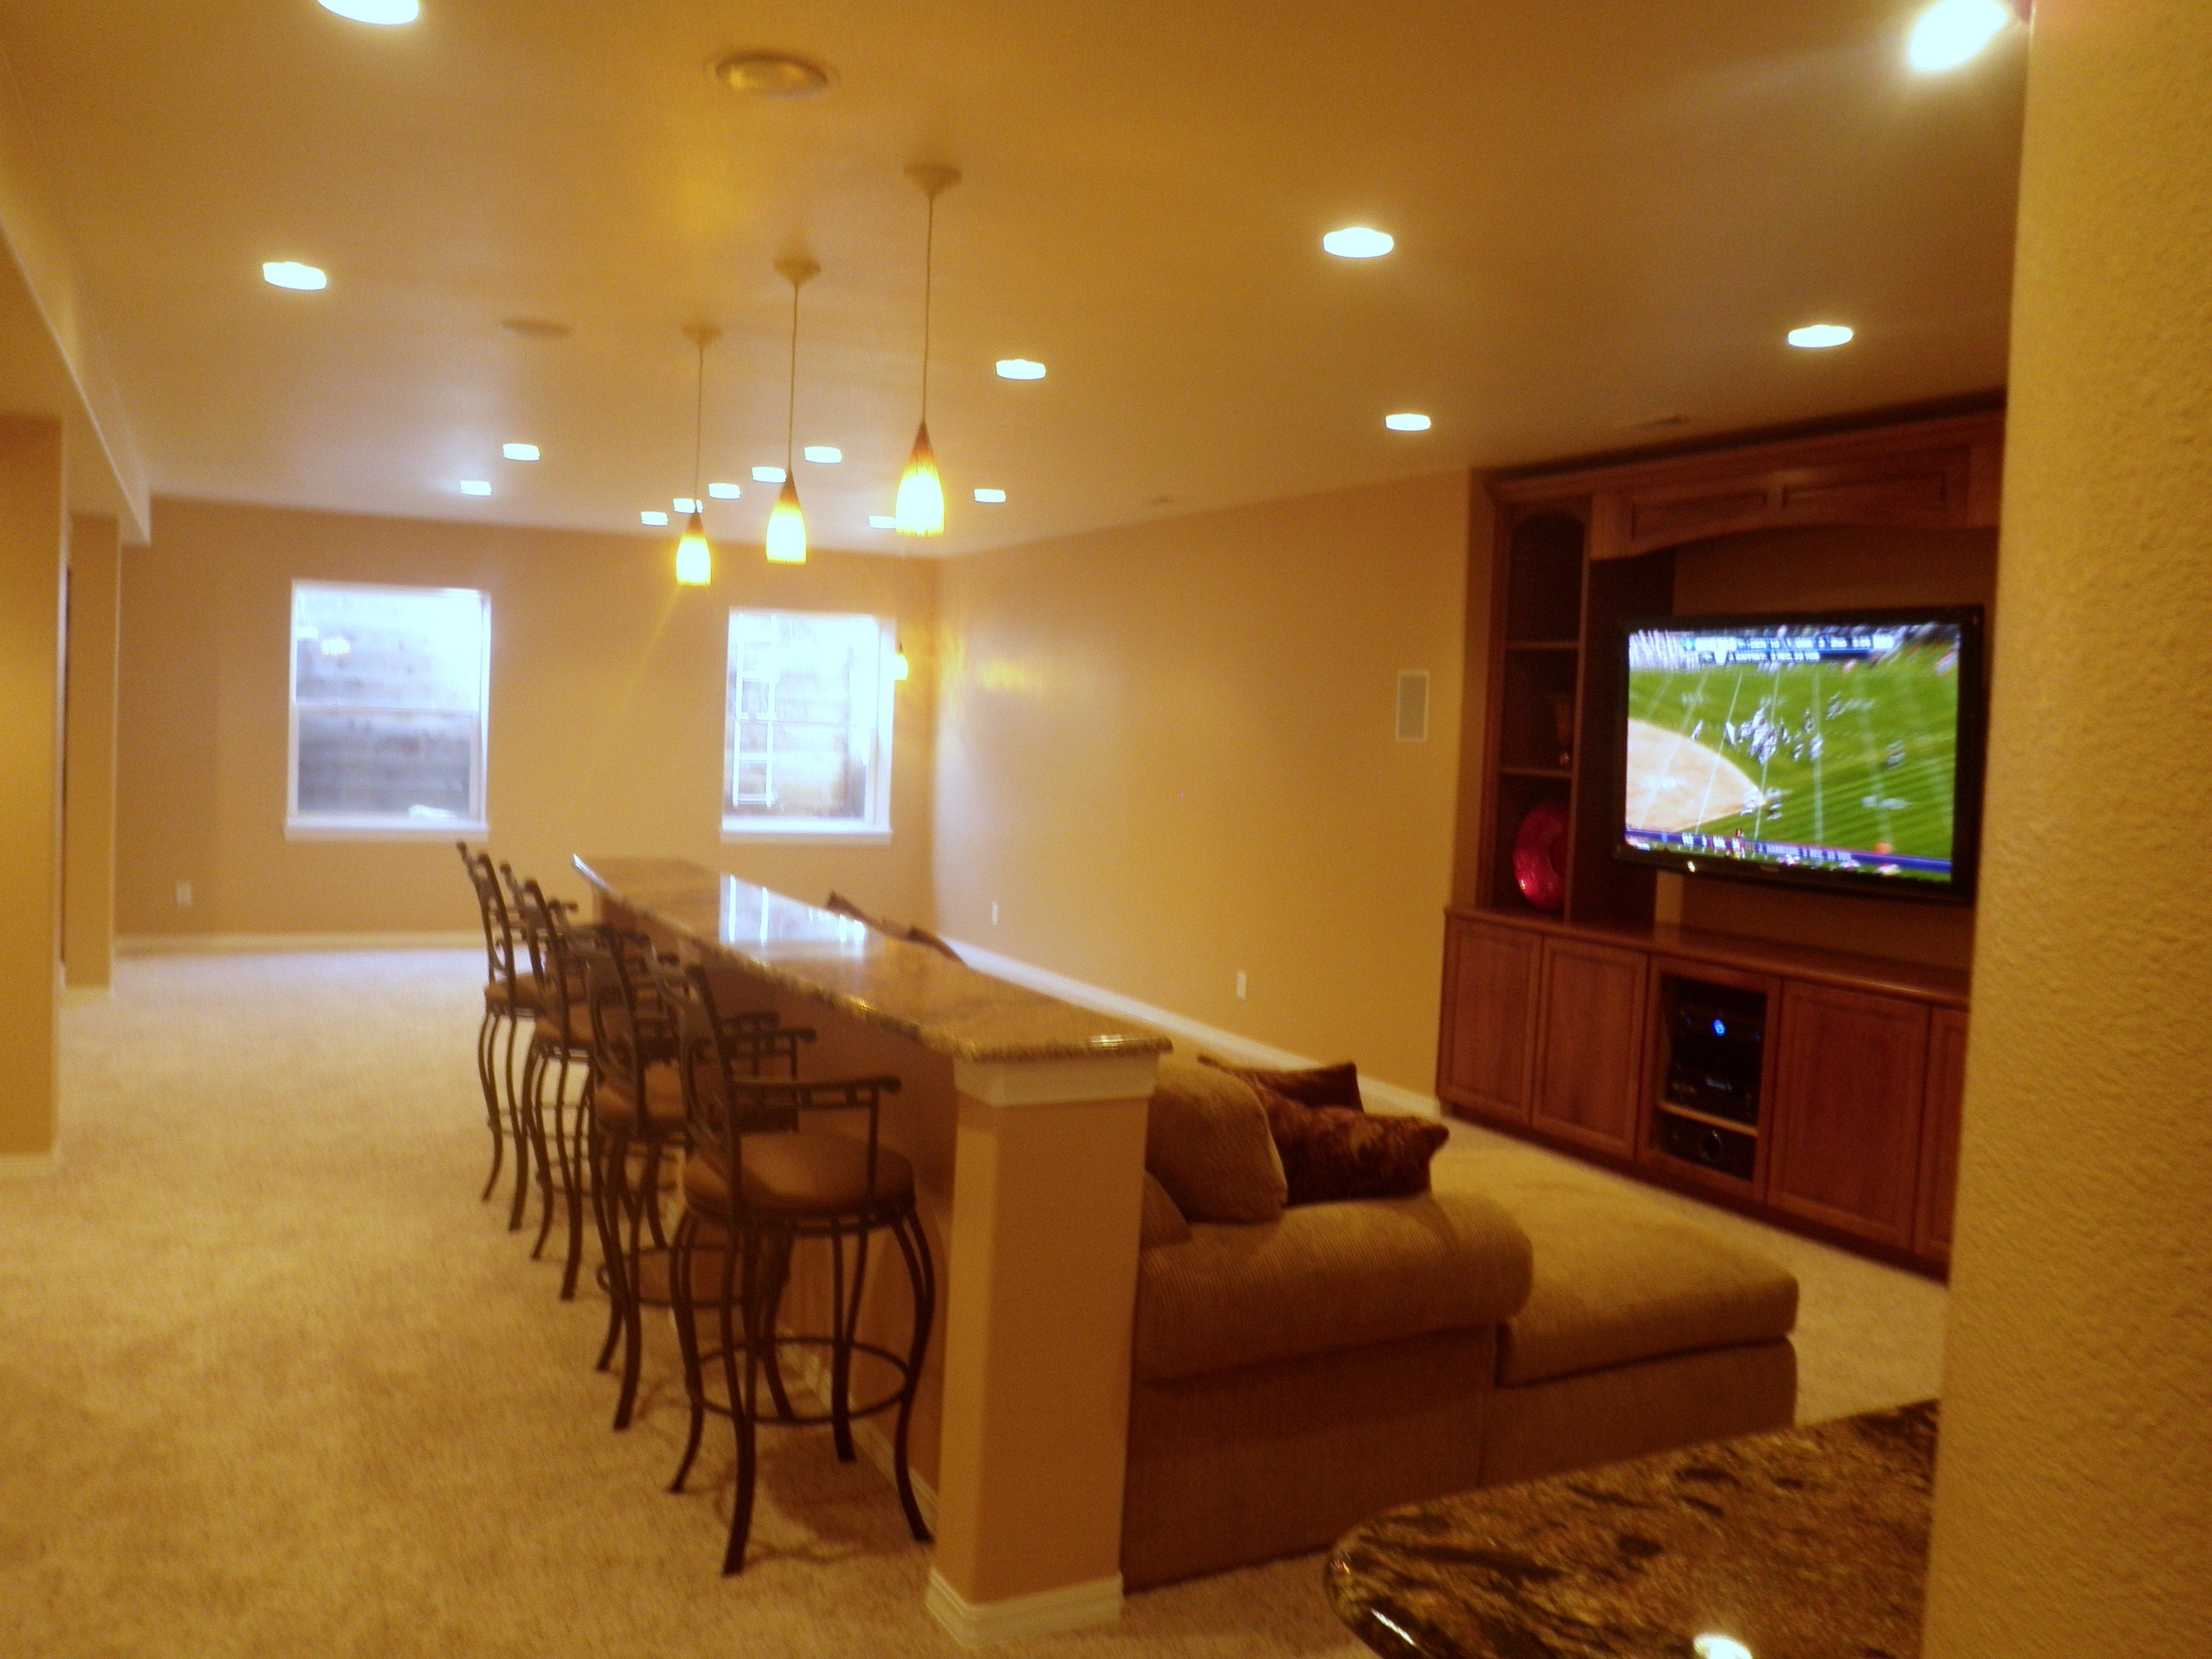 Exceptionnel Man Cave Basement Remodel With Built In Seating Bar Behind The Sectional